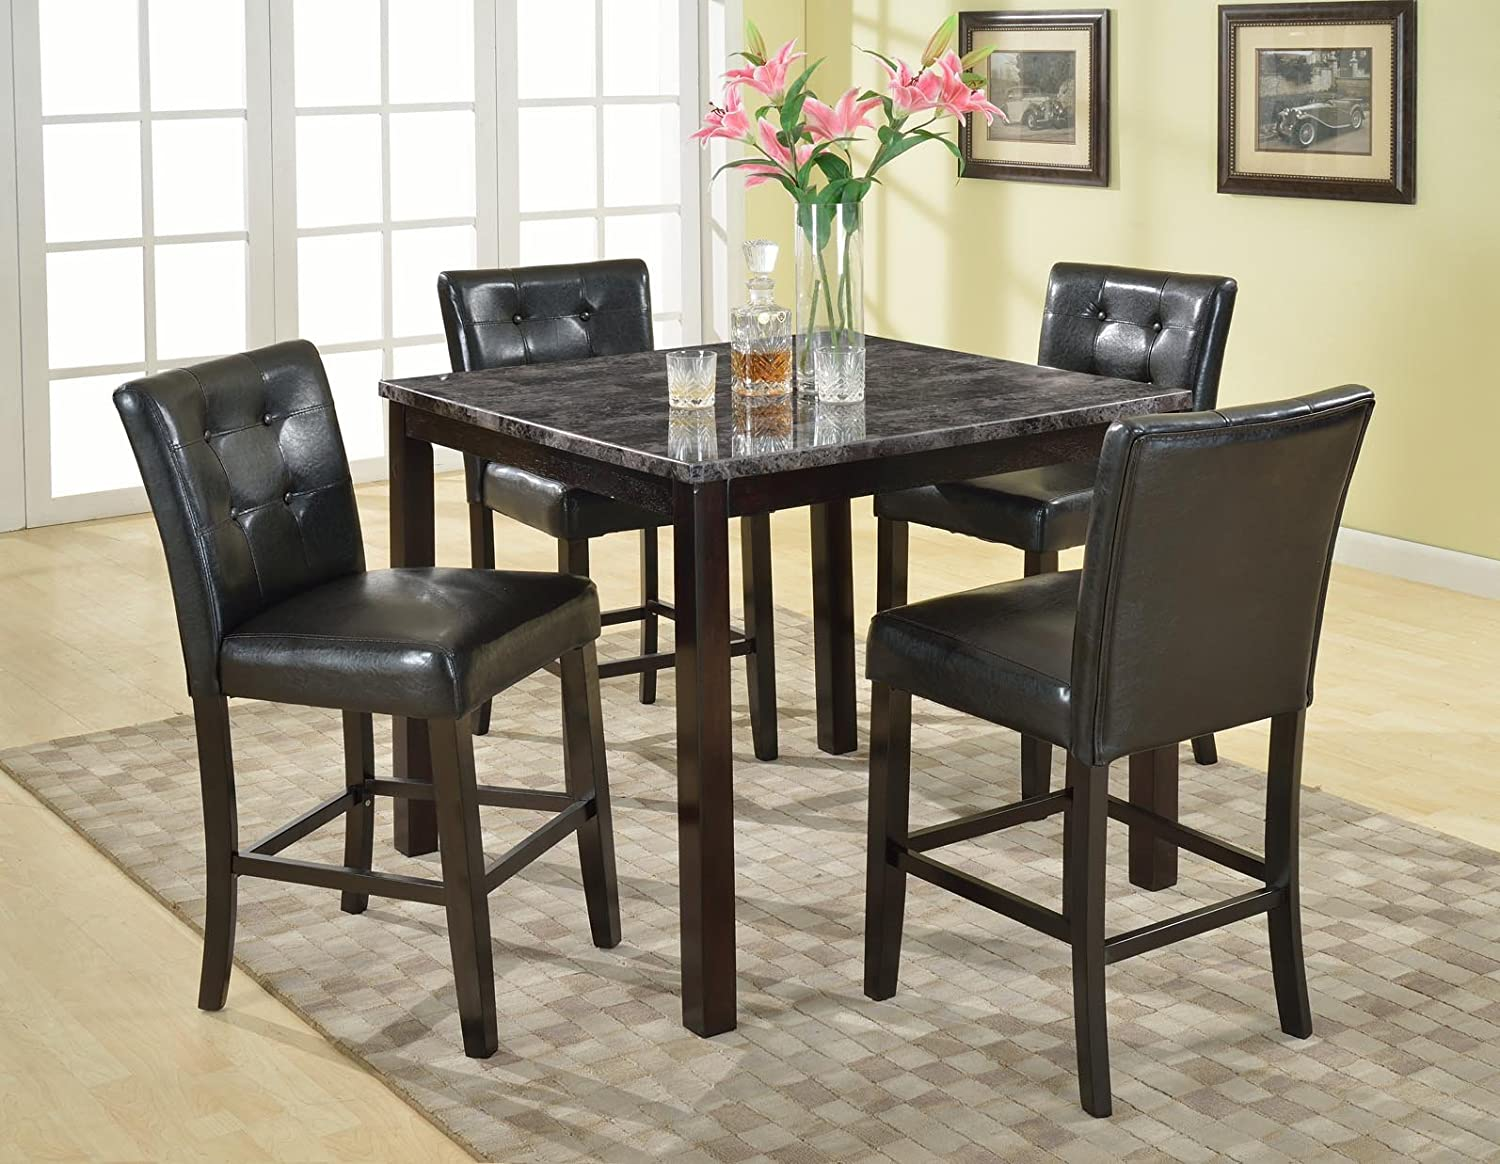 Fascinating Black Dining Room Chairs Set Of 4 Gallery - Best ...